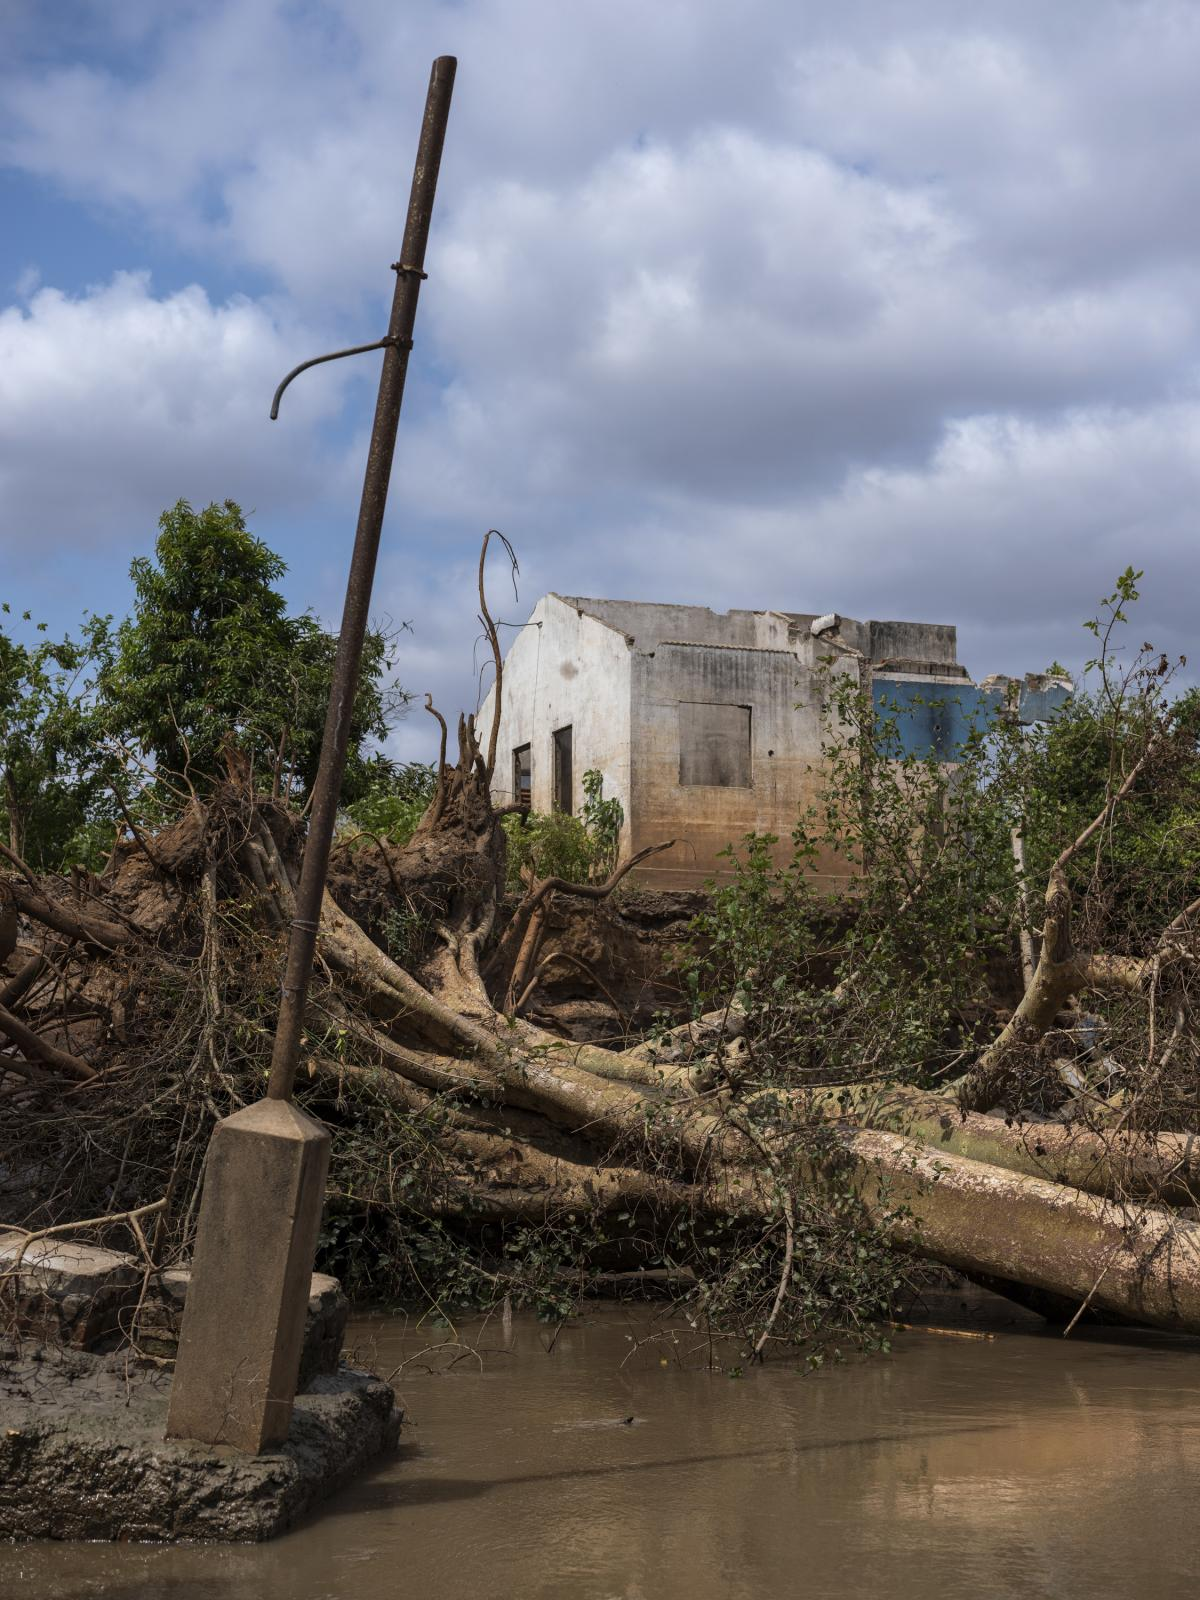 Cyclone Idai destroyed much of Buzi district in Mozambique. The storm is one of multiple major disasters that affected the country in 2019.